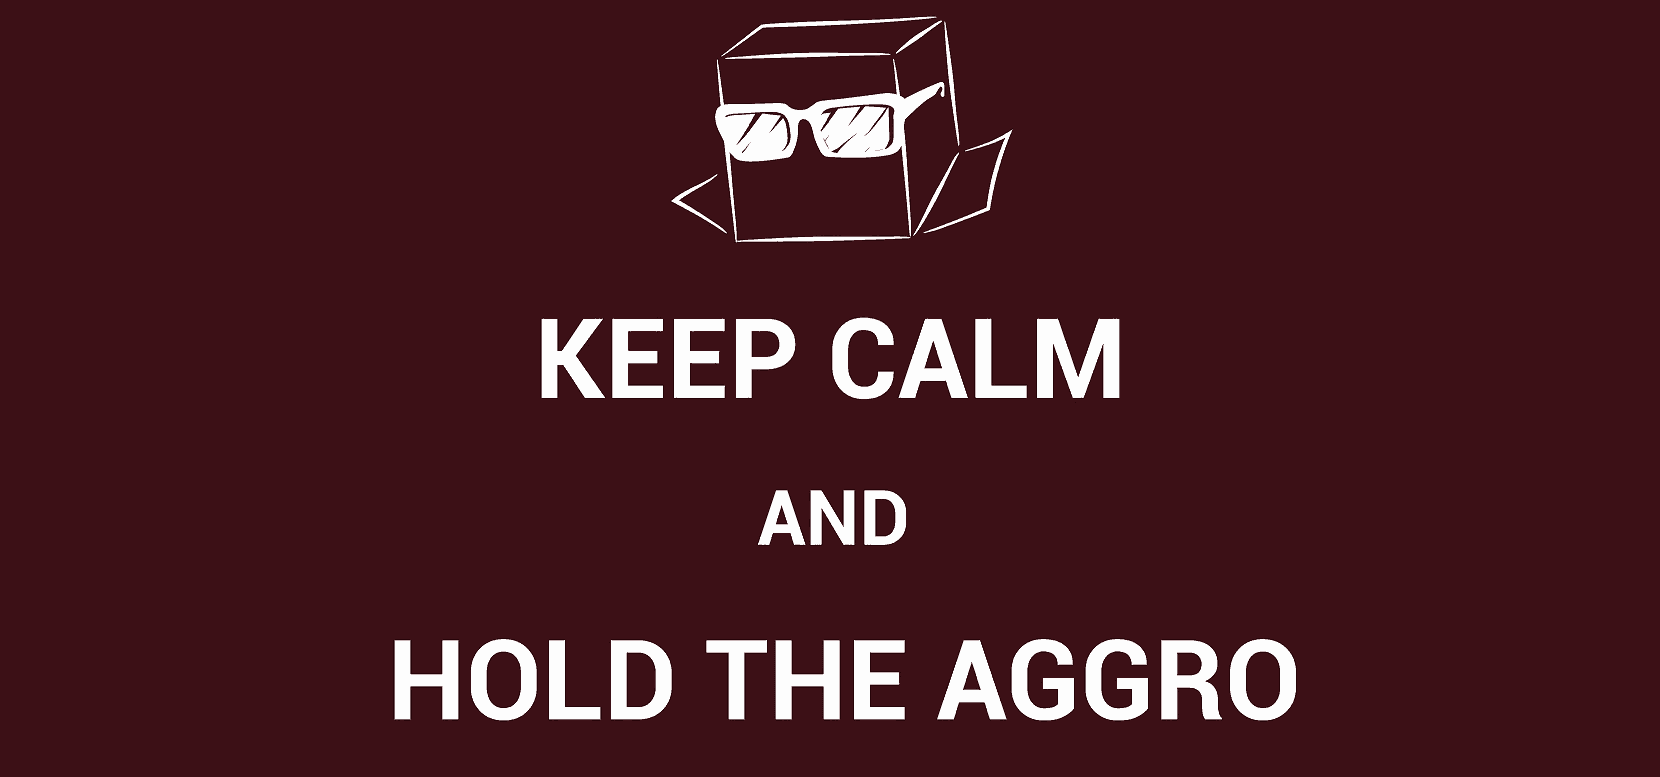 Keep Calm and Hold the Aggro